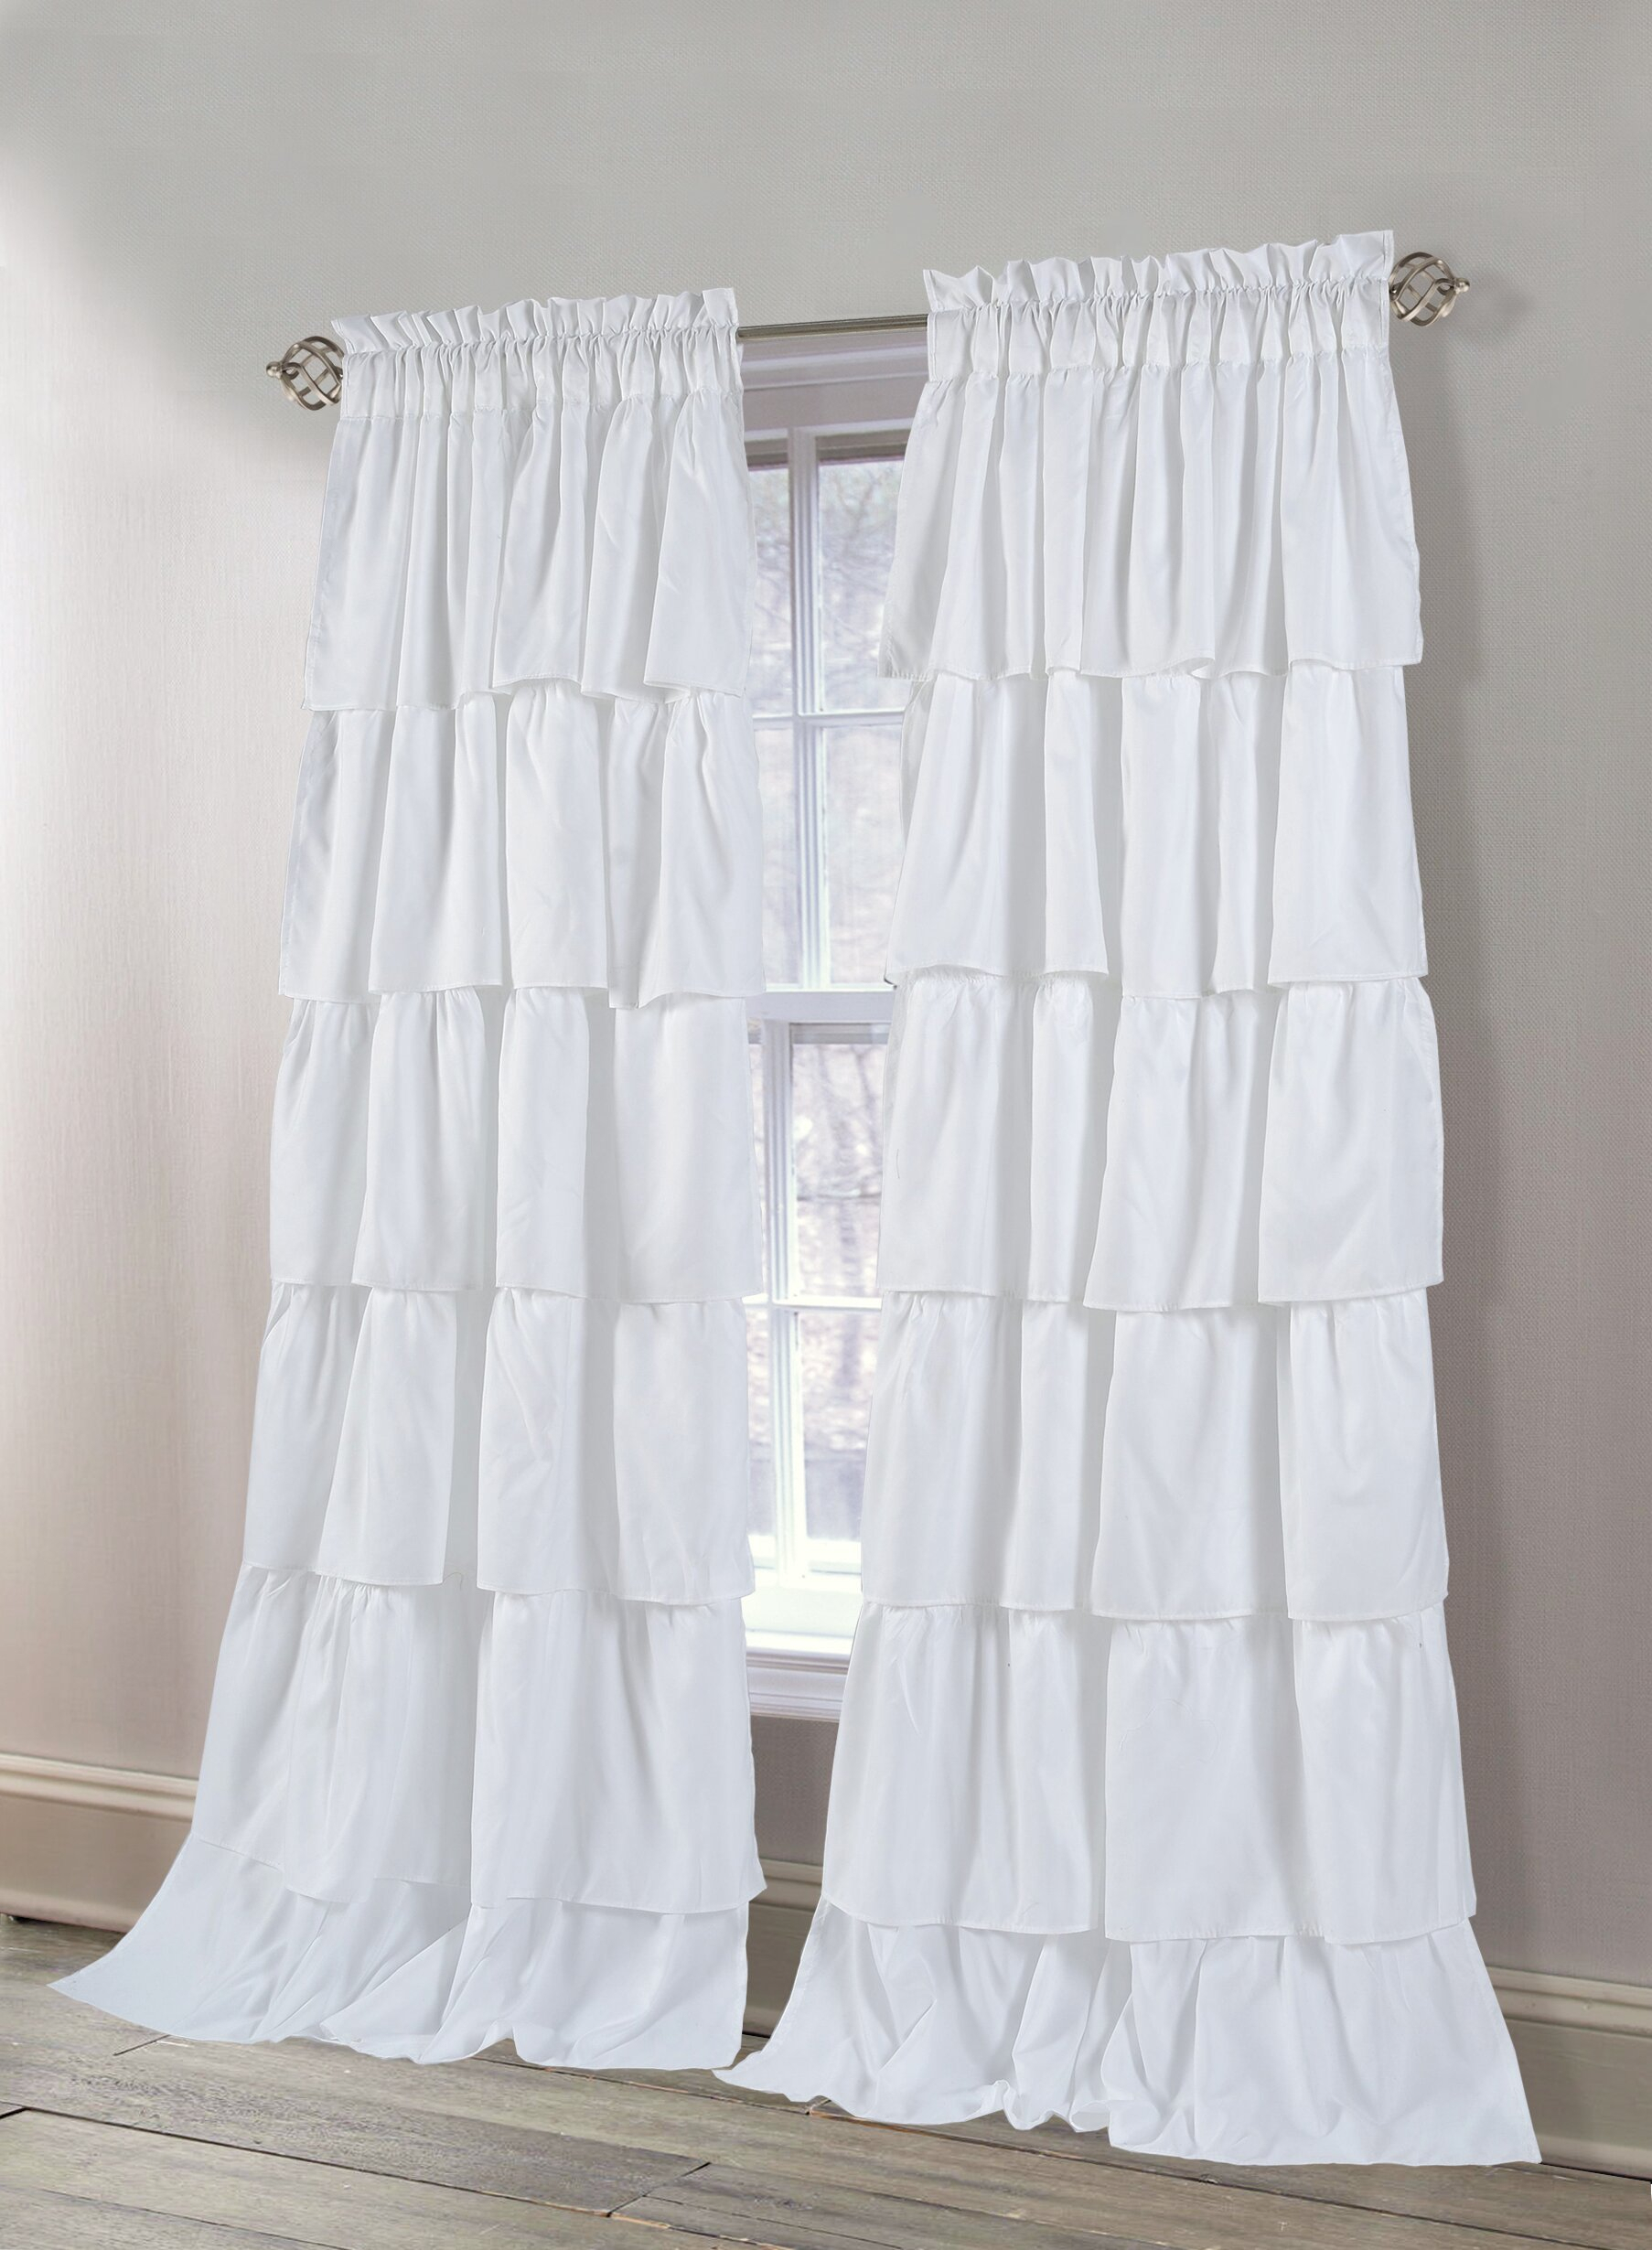 Azariah Solid Semi Sheer Rod Pocket Curtain Panels With Luxury Collection Cranston Sheer Curtain Panel Pairs (View 16 of 20)